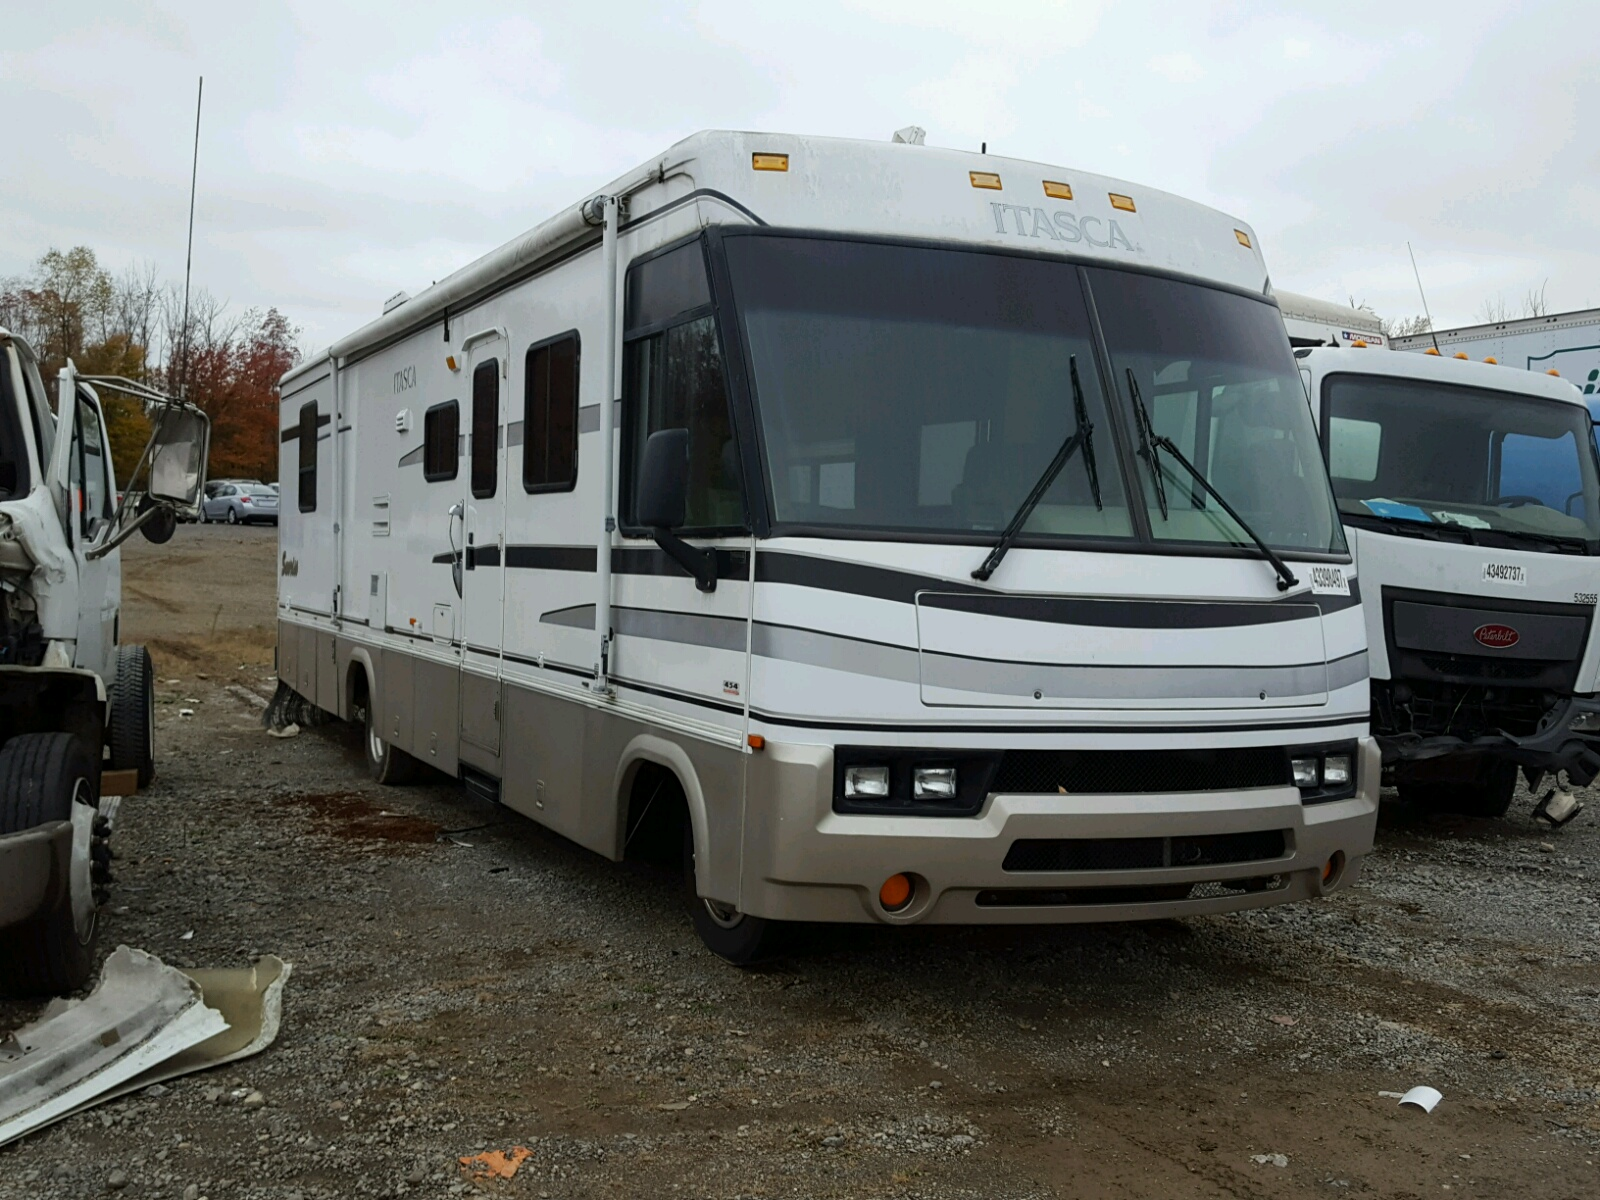 2000 Workhorse Custom Chassis Motorhome for sale at Copart ...